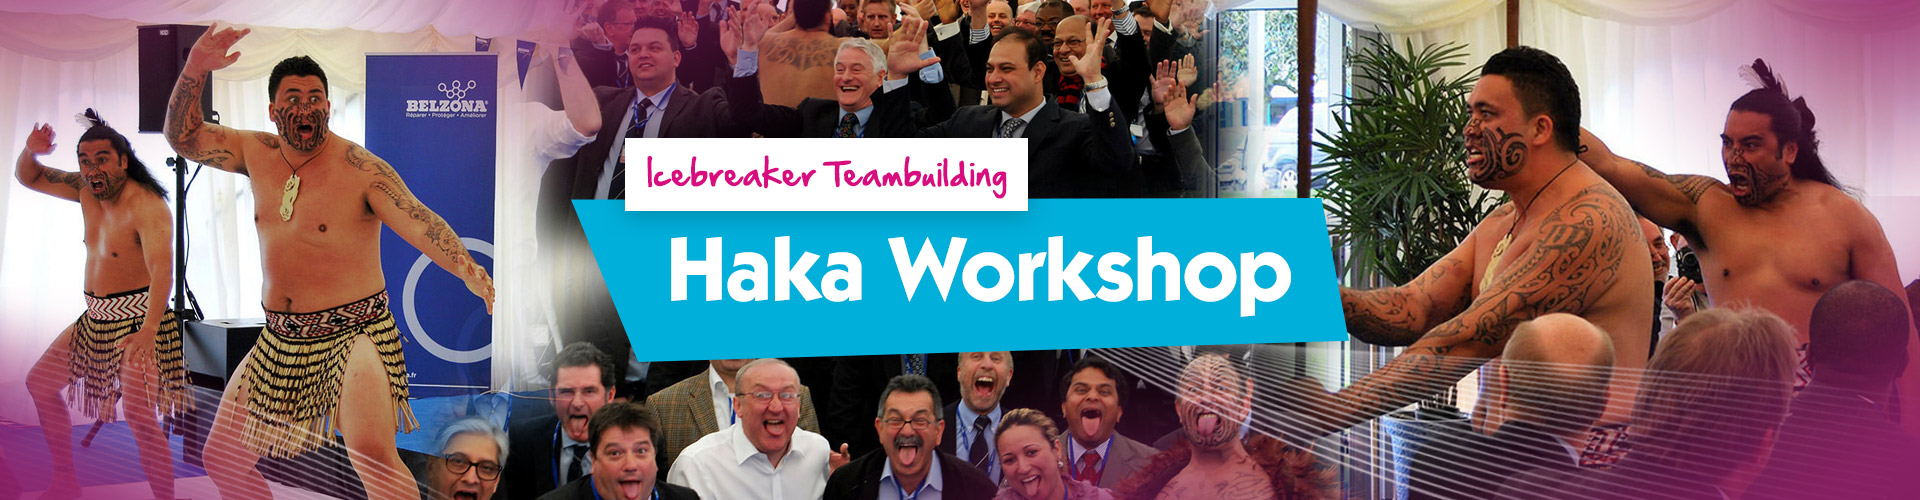 Teambuilding | Haka Workshop